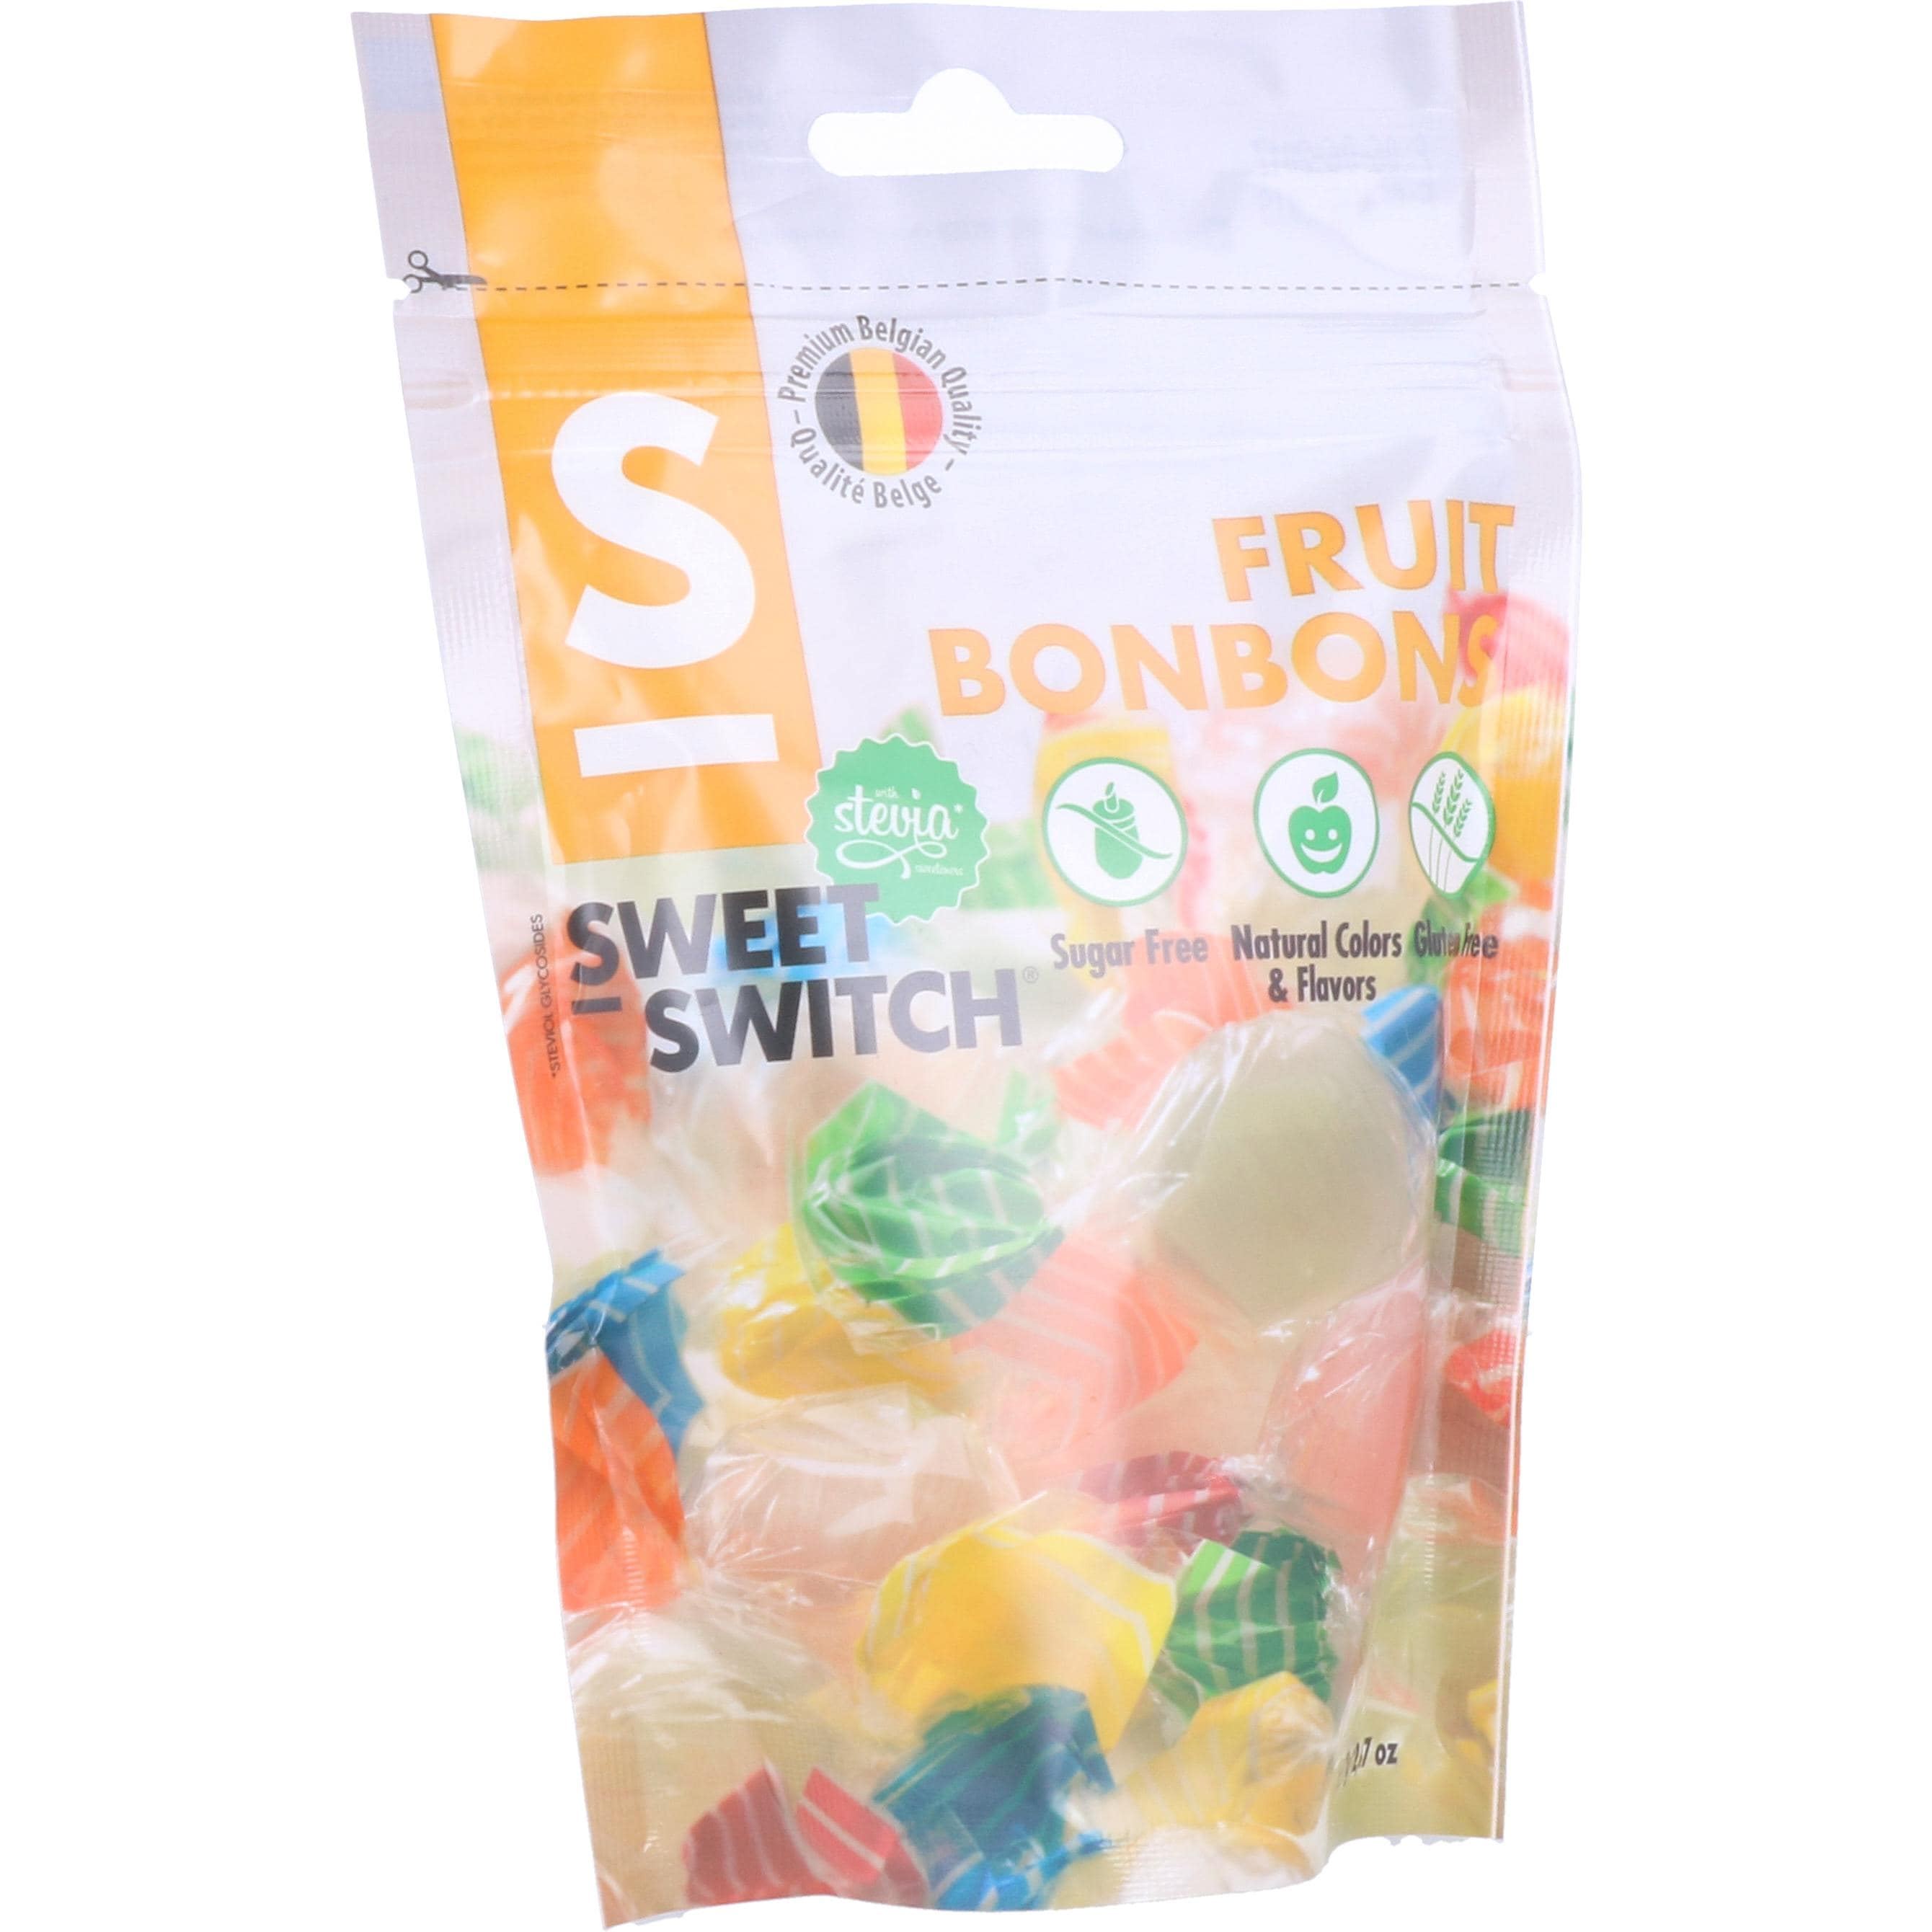 Sweet Switch Stevia Frucht Bonbons 70g